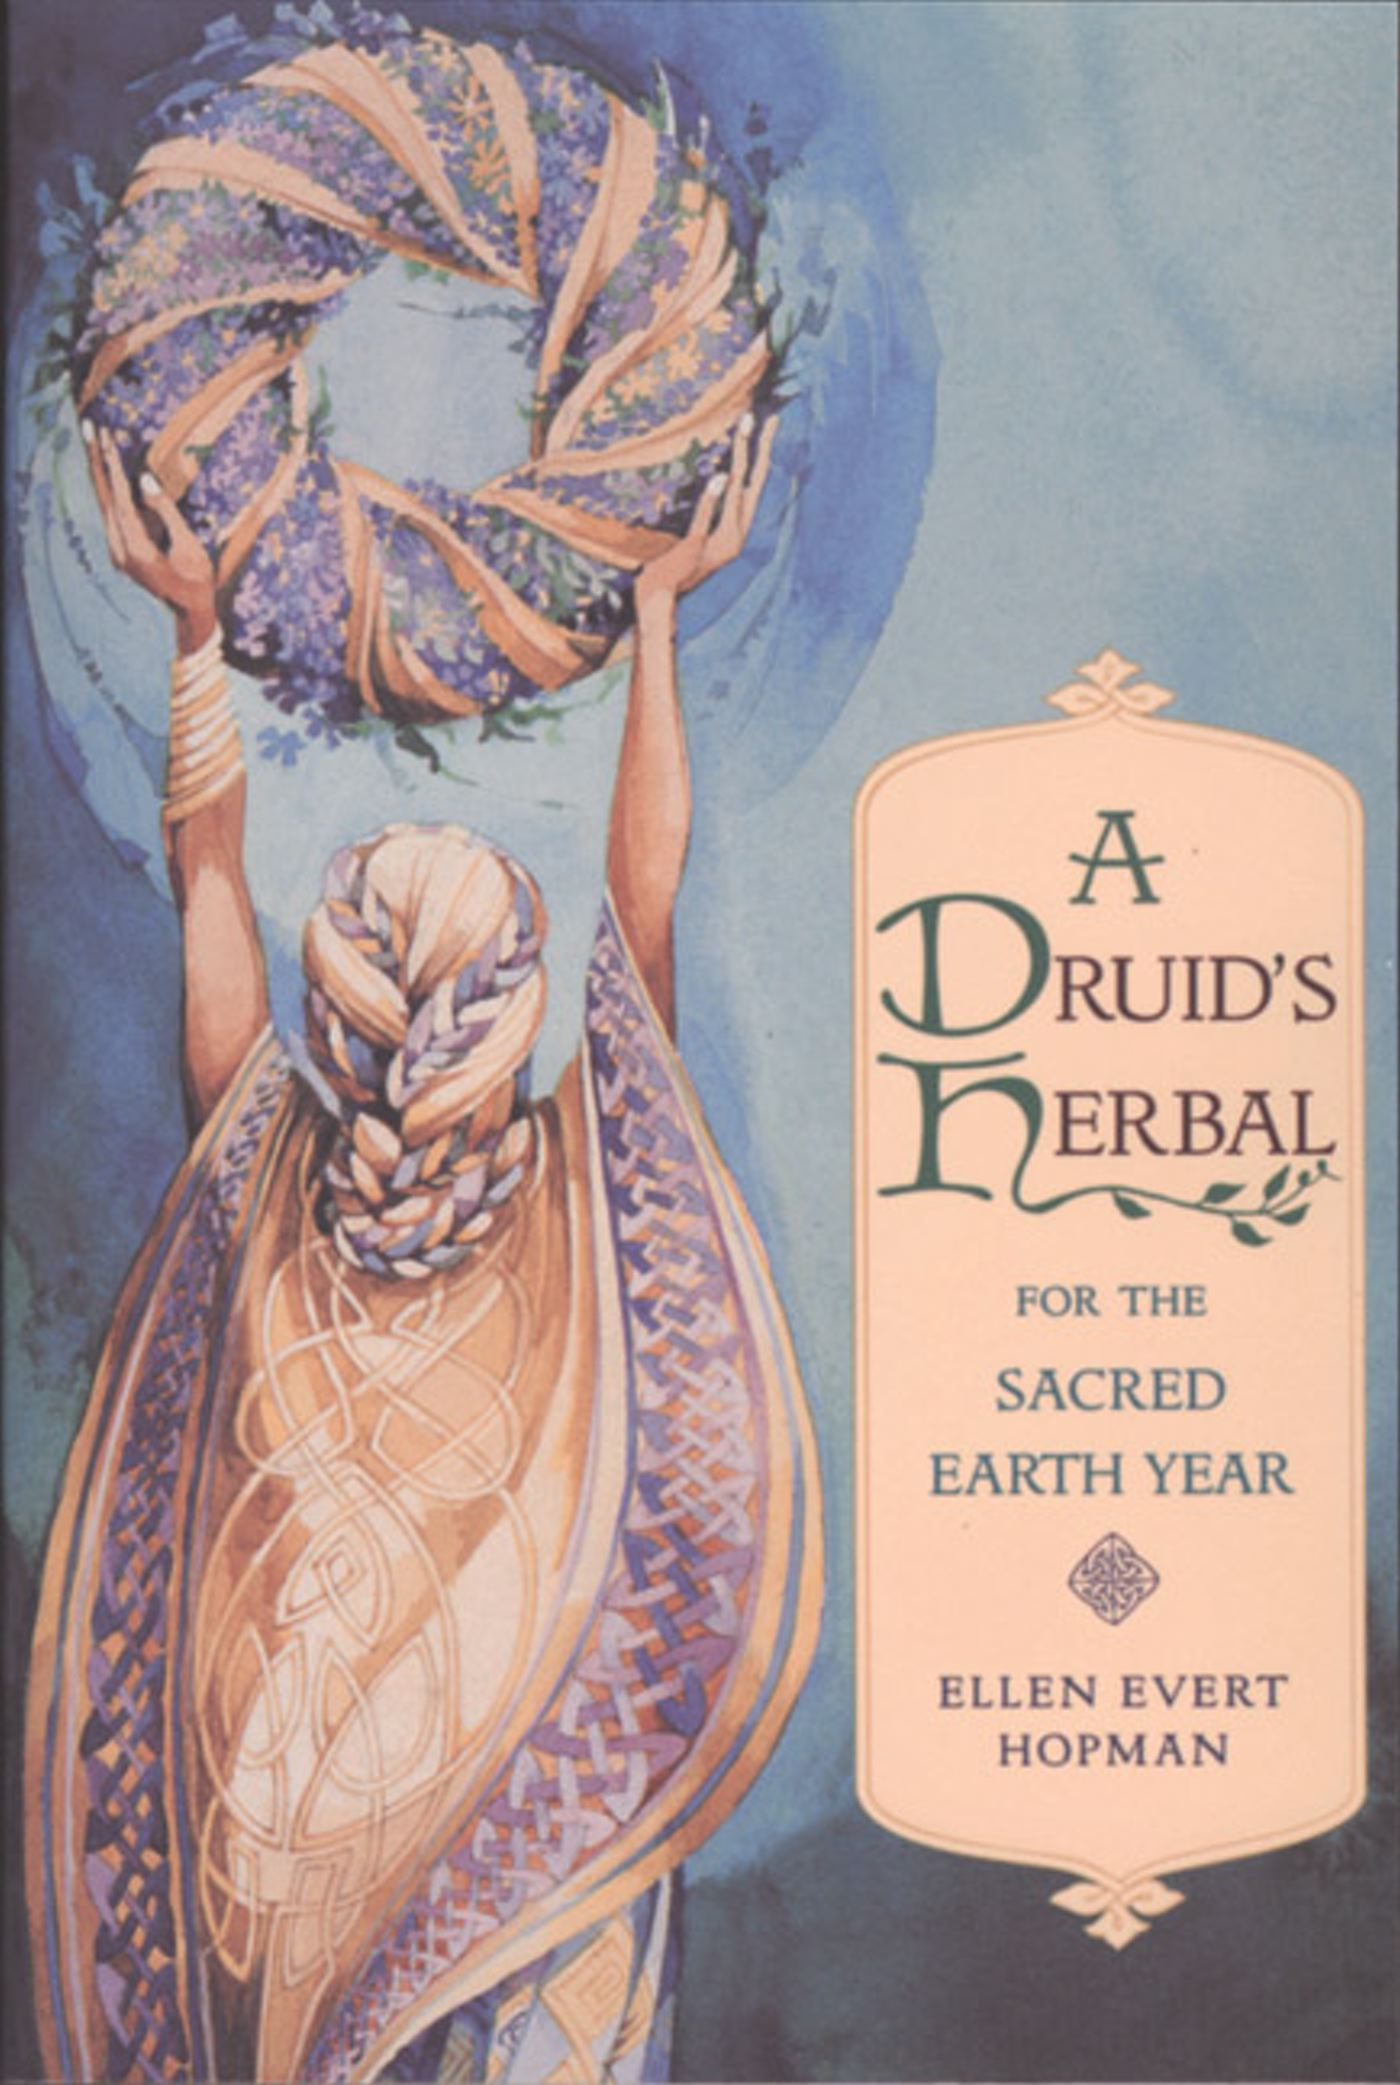 A-druids-herbal-for-the-sacred-earth-year-9780892815012_hr